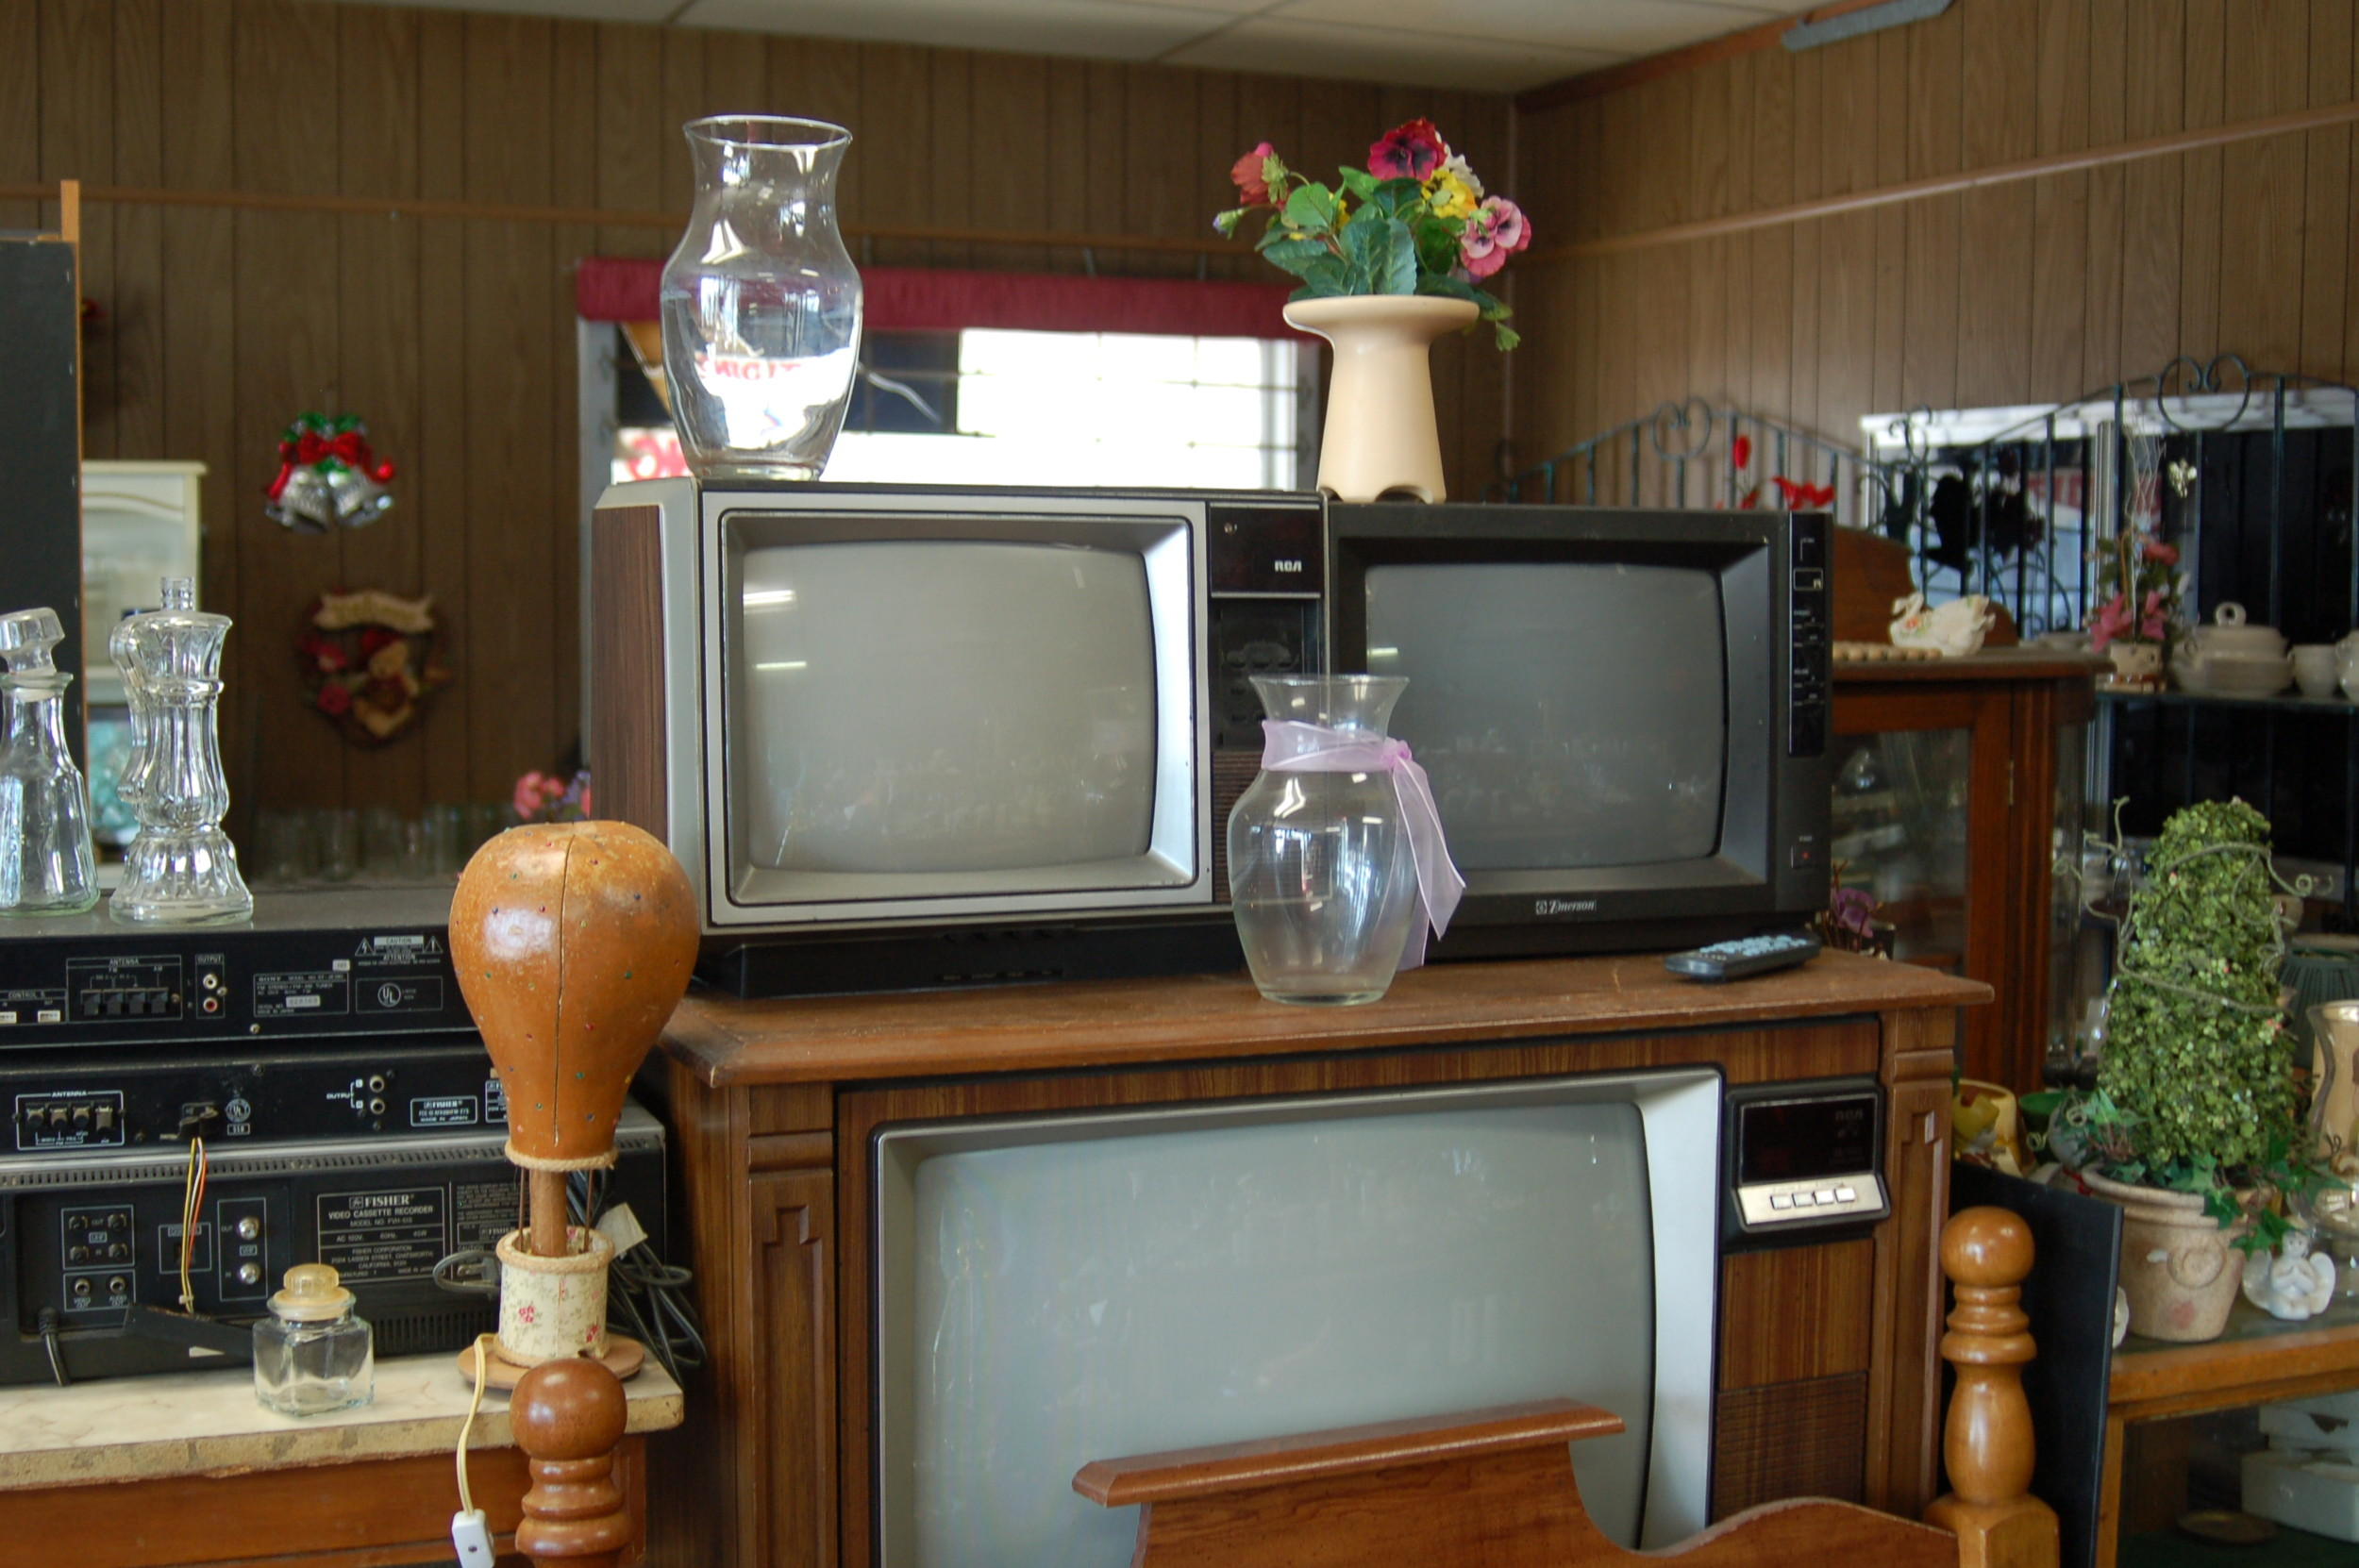 Find An Antique At Sanford And Son The Sumter Item